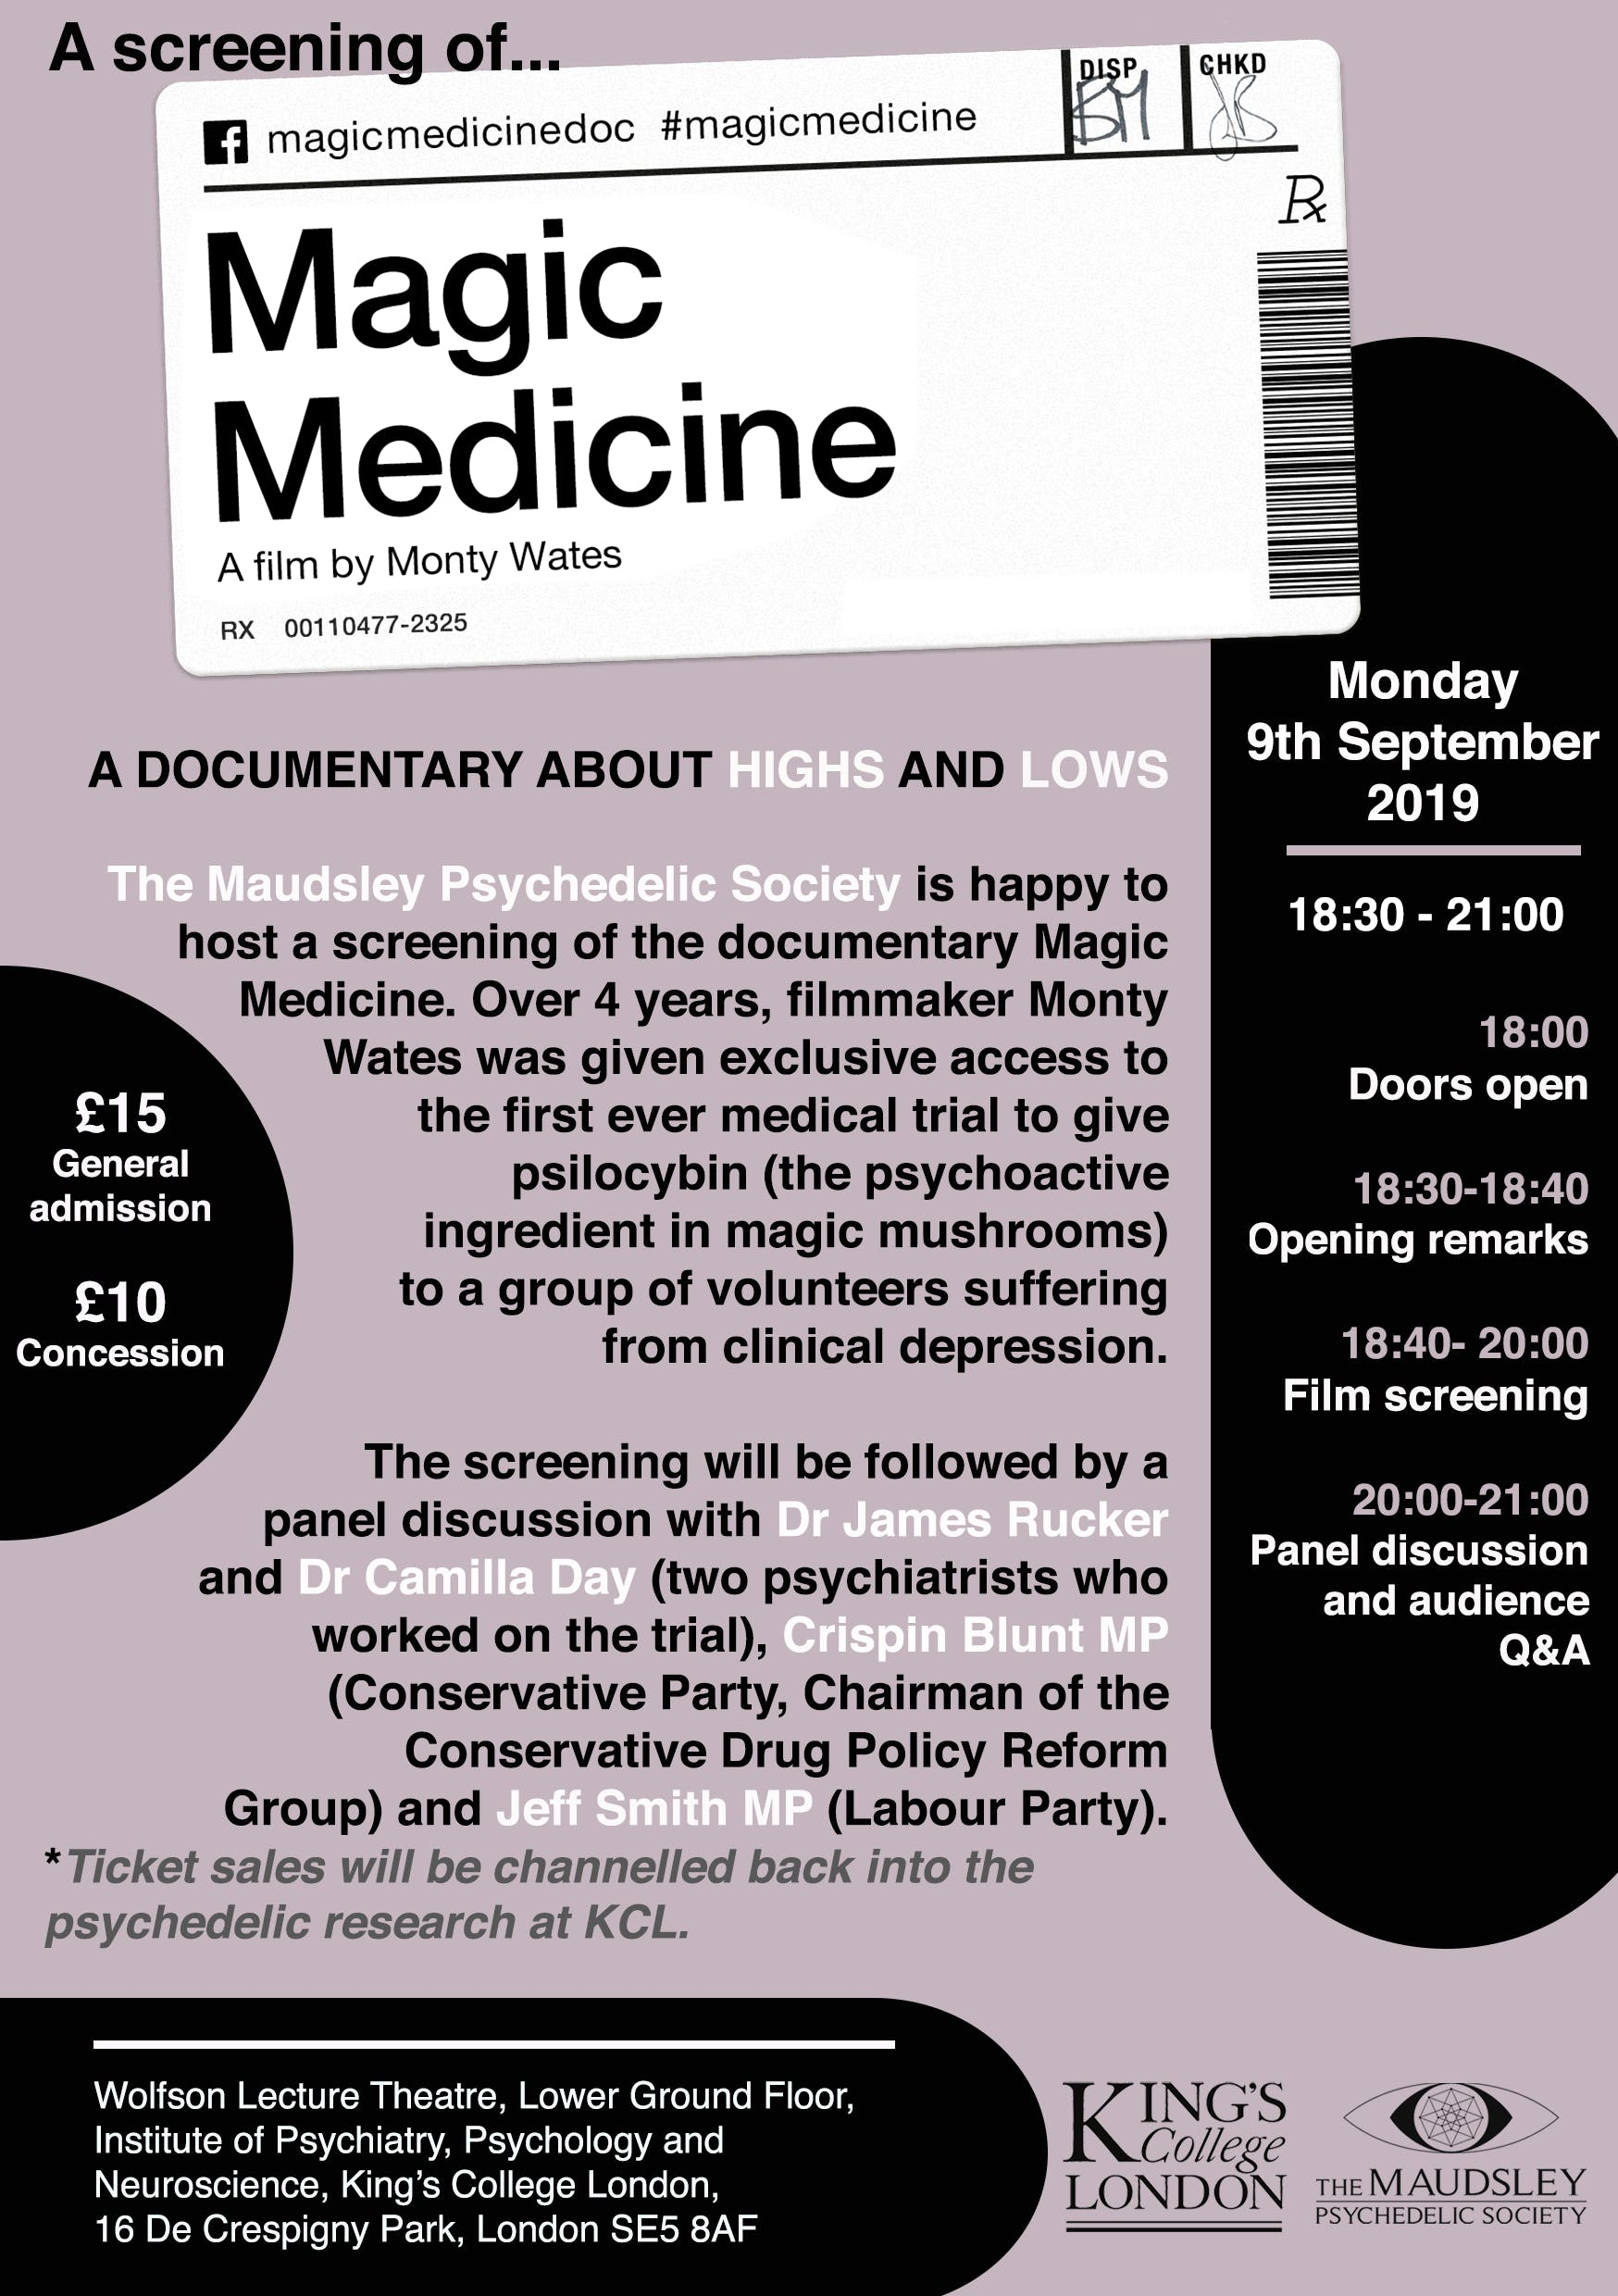 Magic Medicine: A Documentary About Highs and Lows + Panel Discussion